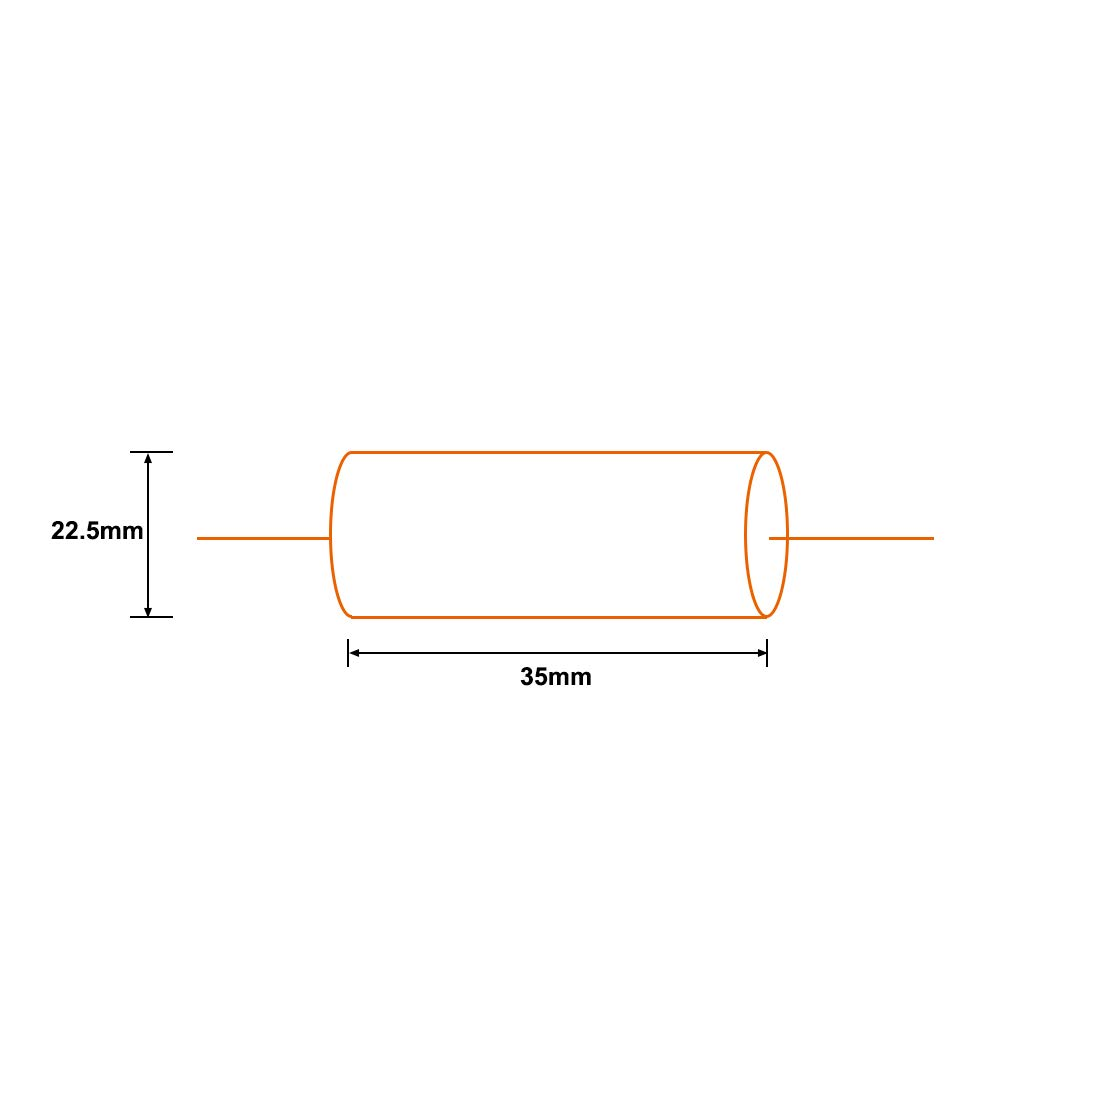 uxcell Film Capacitor 100V DC 4.7uF Round Axial Polyester Film Capacitor for Audio Divider Yellow